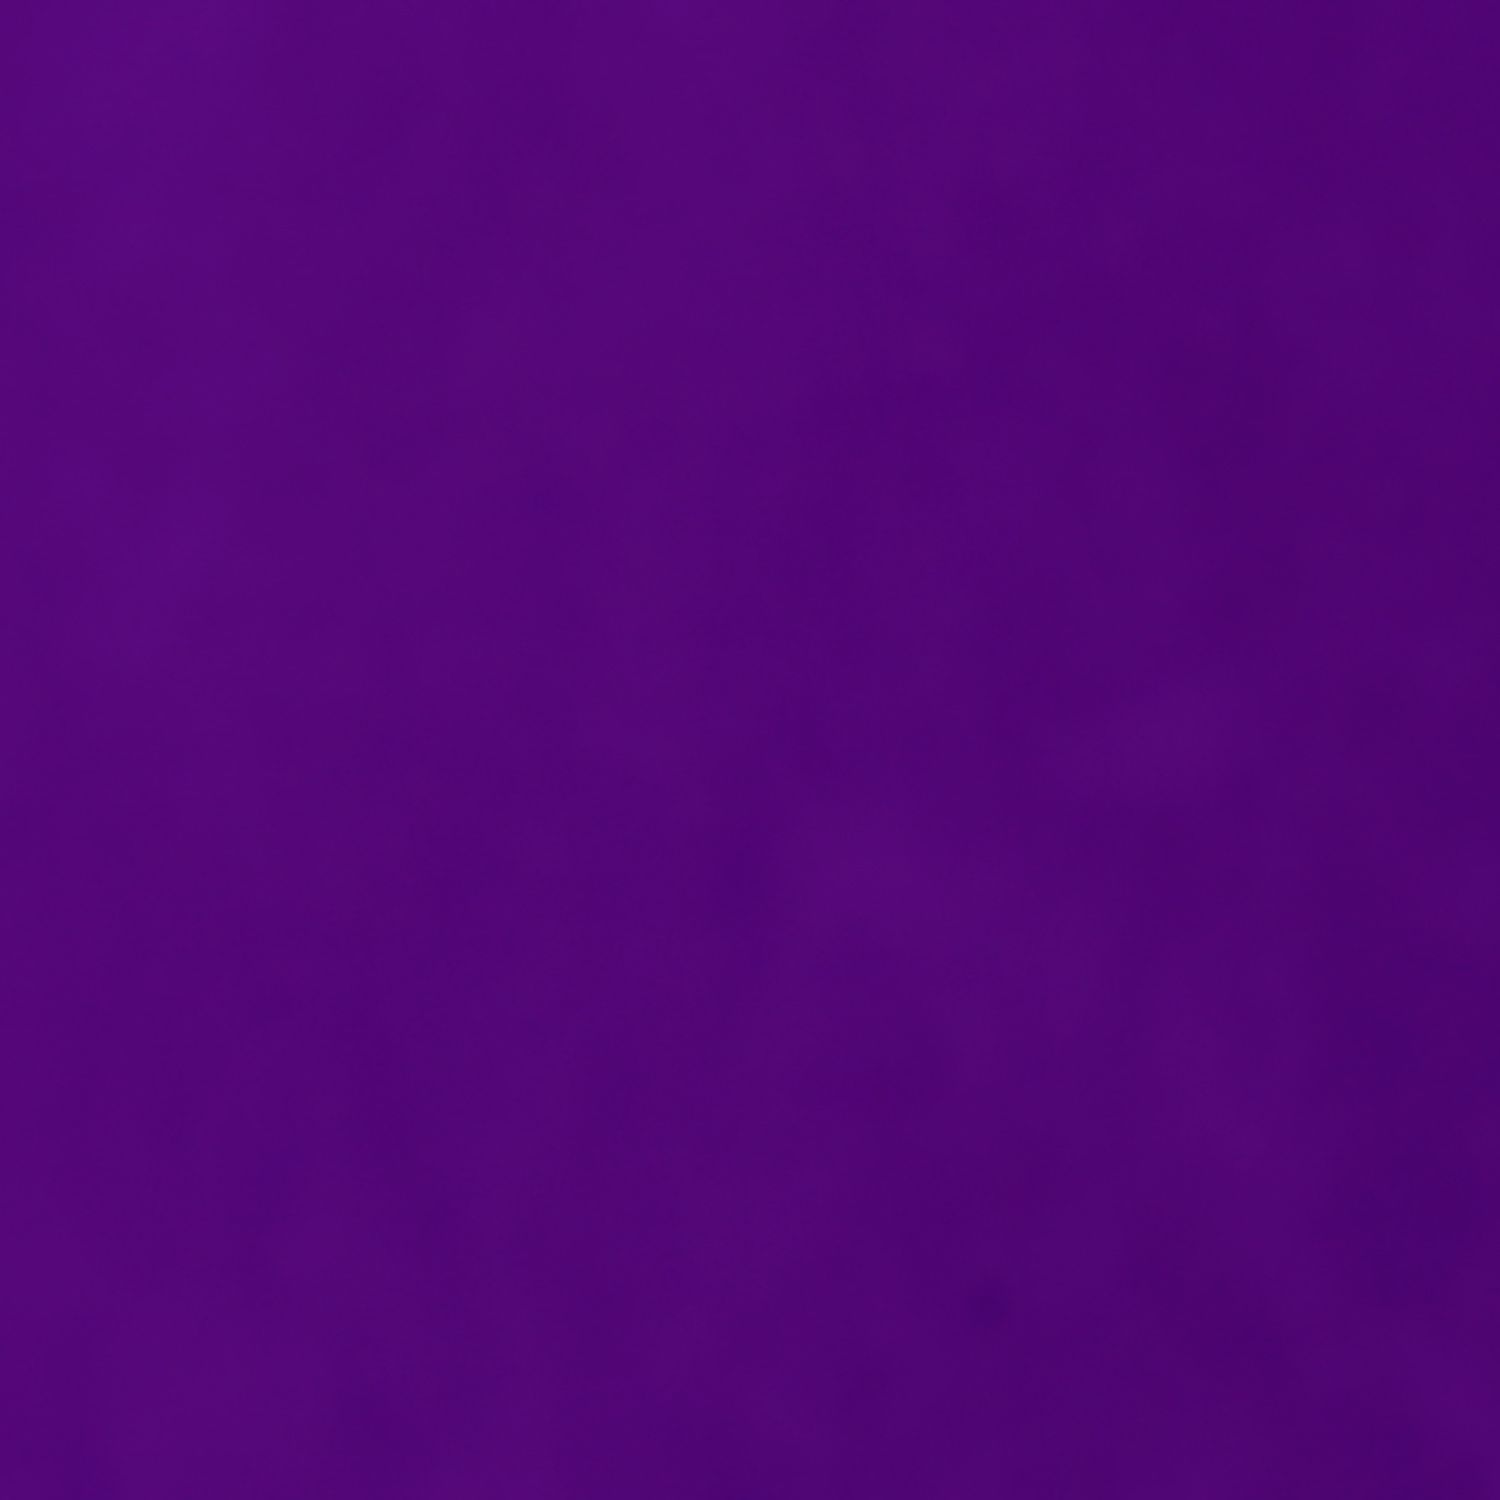 Wallpaper Iphone Violet: We're €�painted Purple' Today For International Women's Day